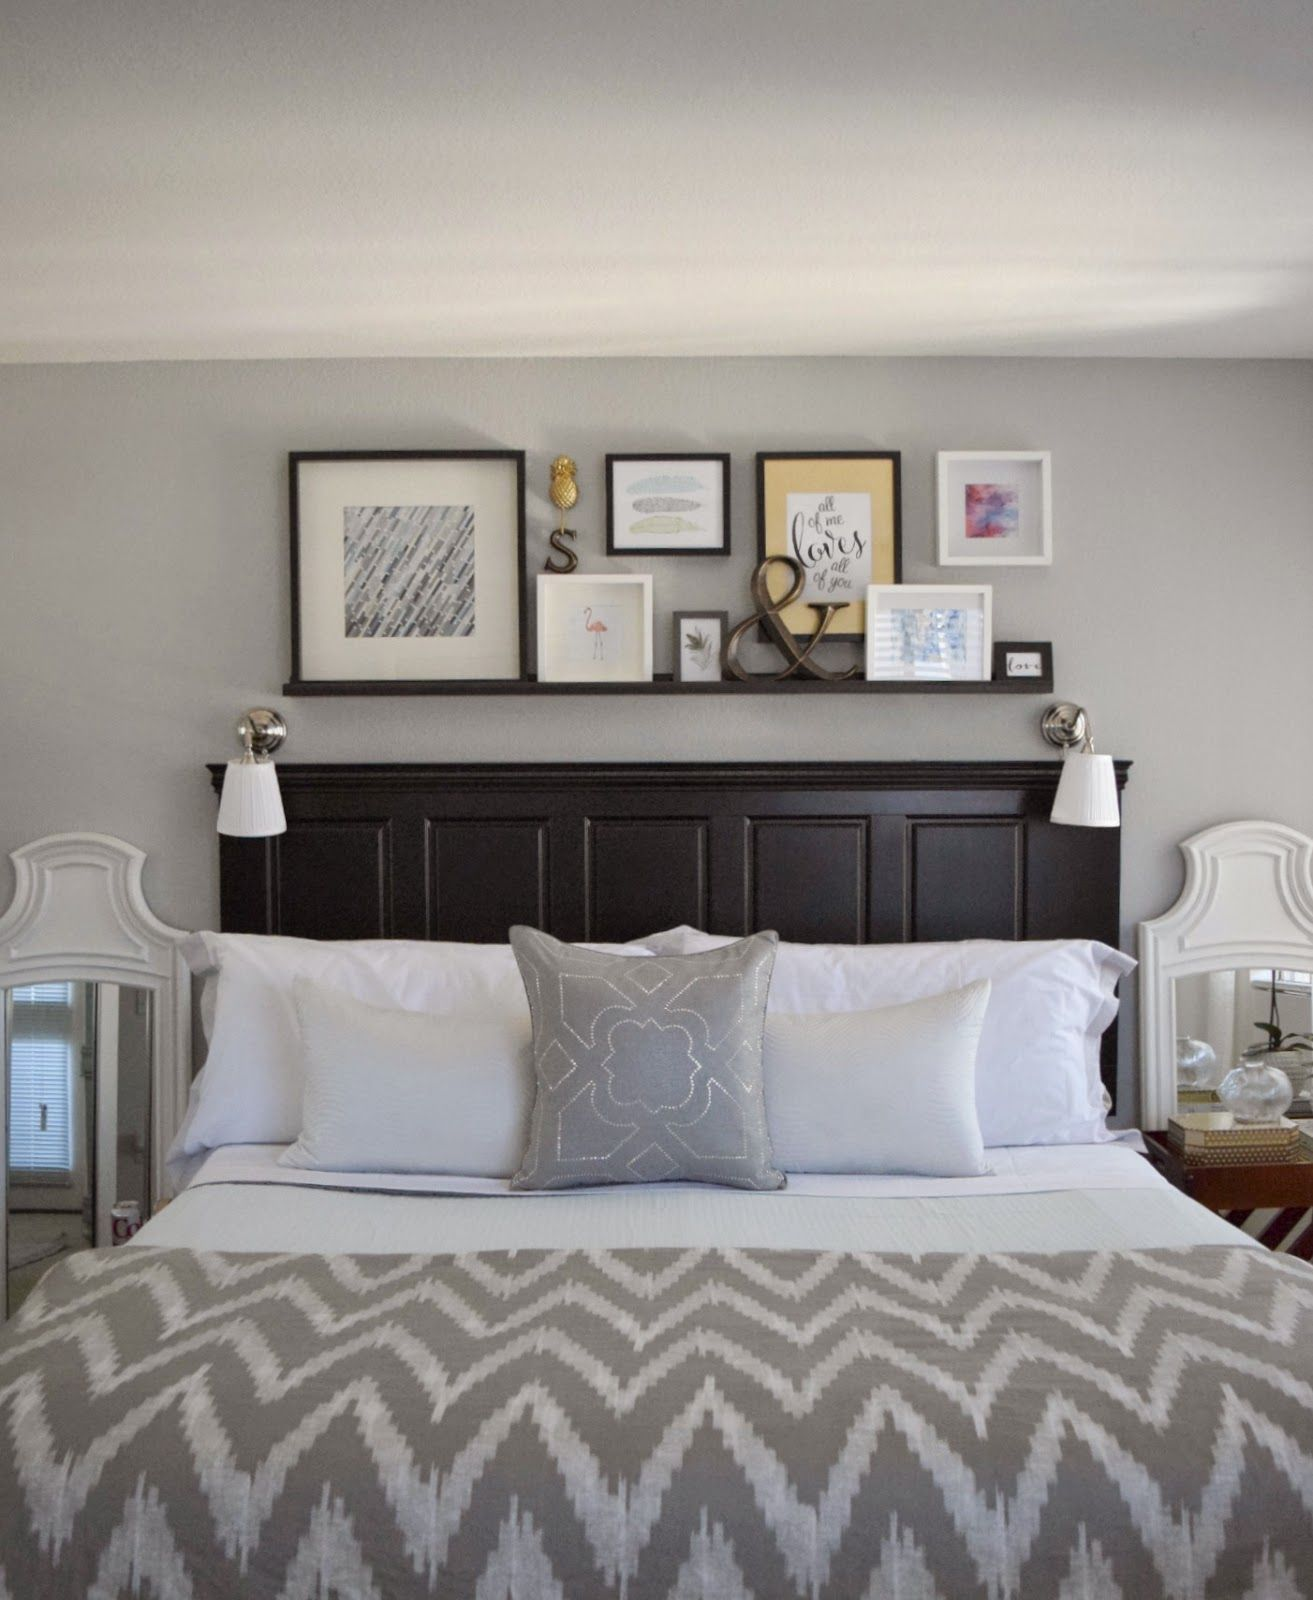 How to make your bed like the hotels do decorating - Bedroom wall shelves decorating ideas ...